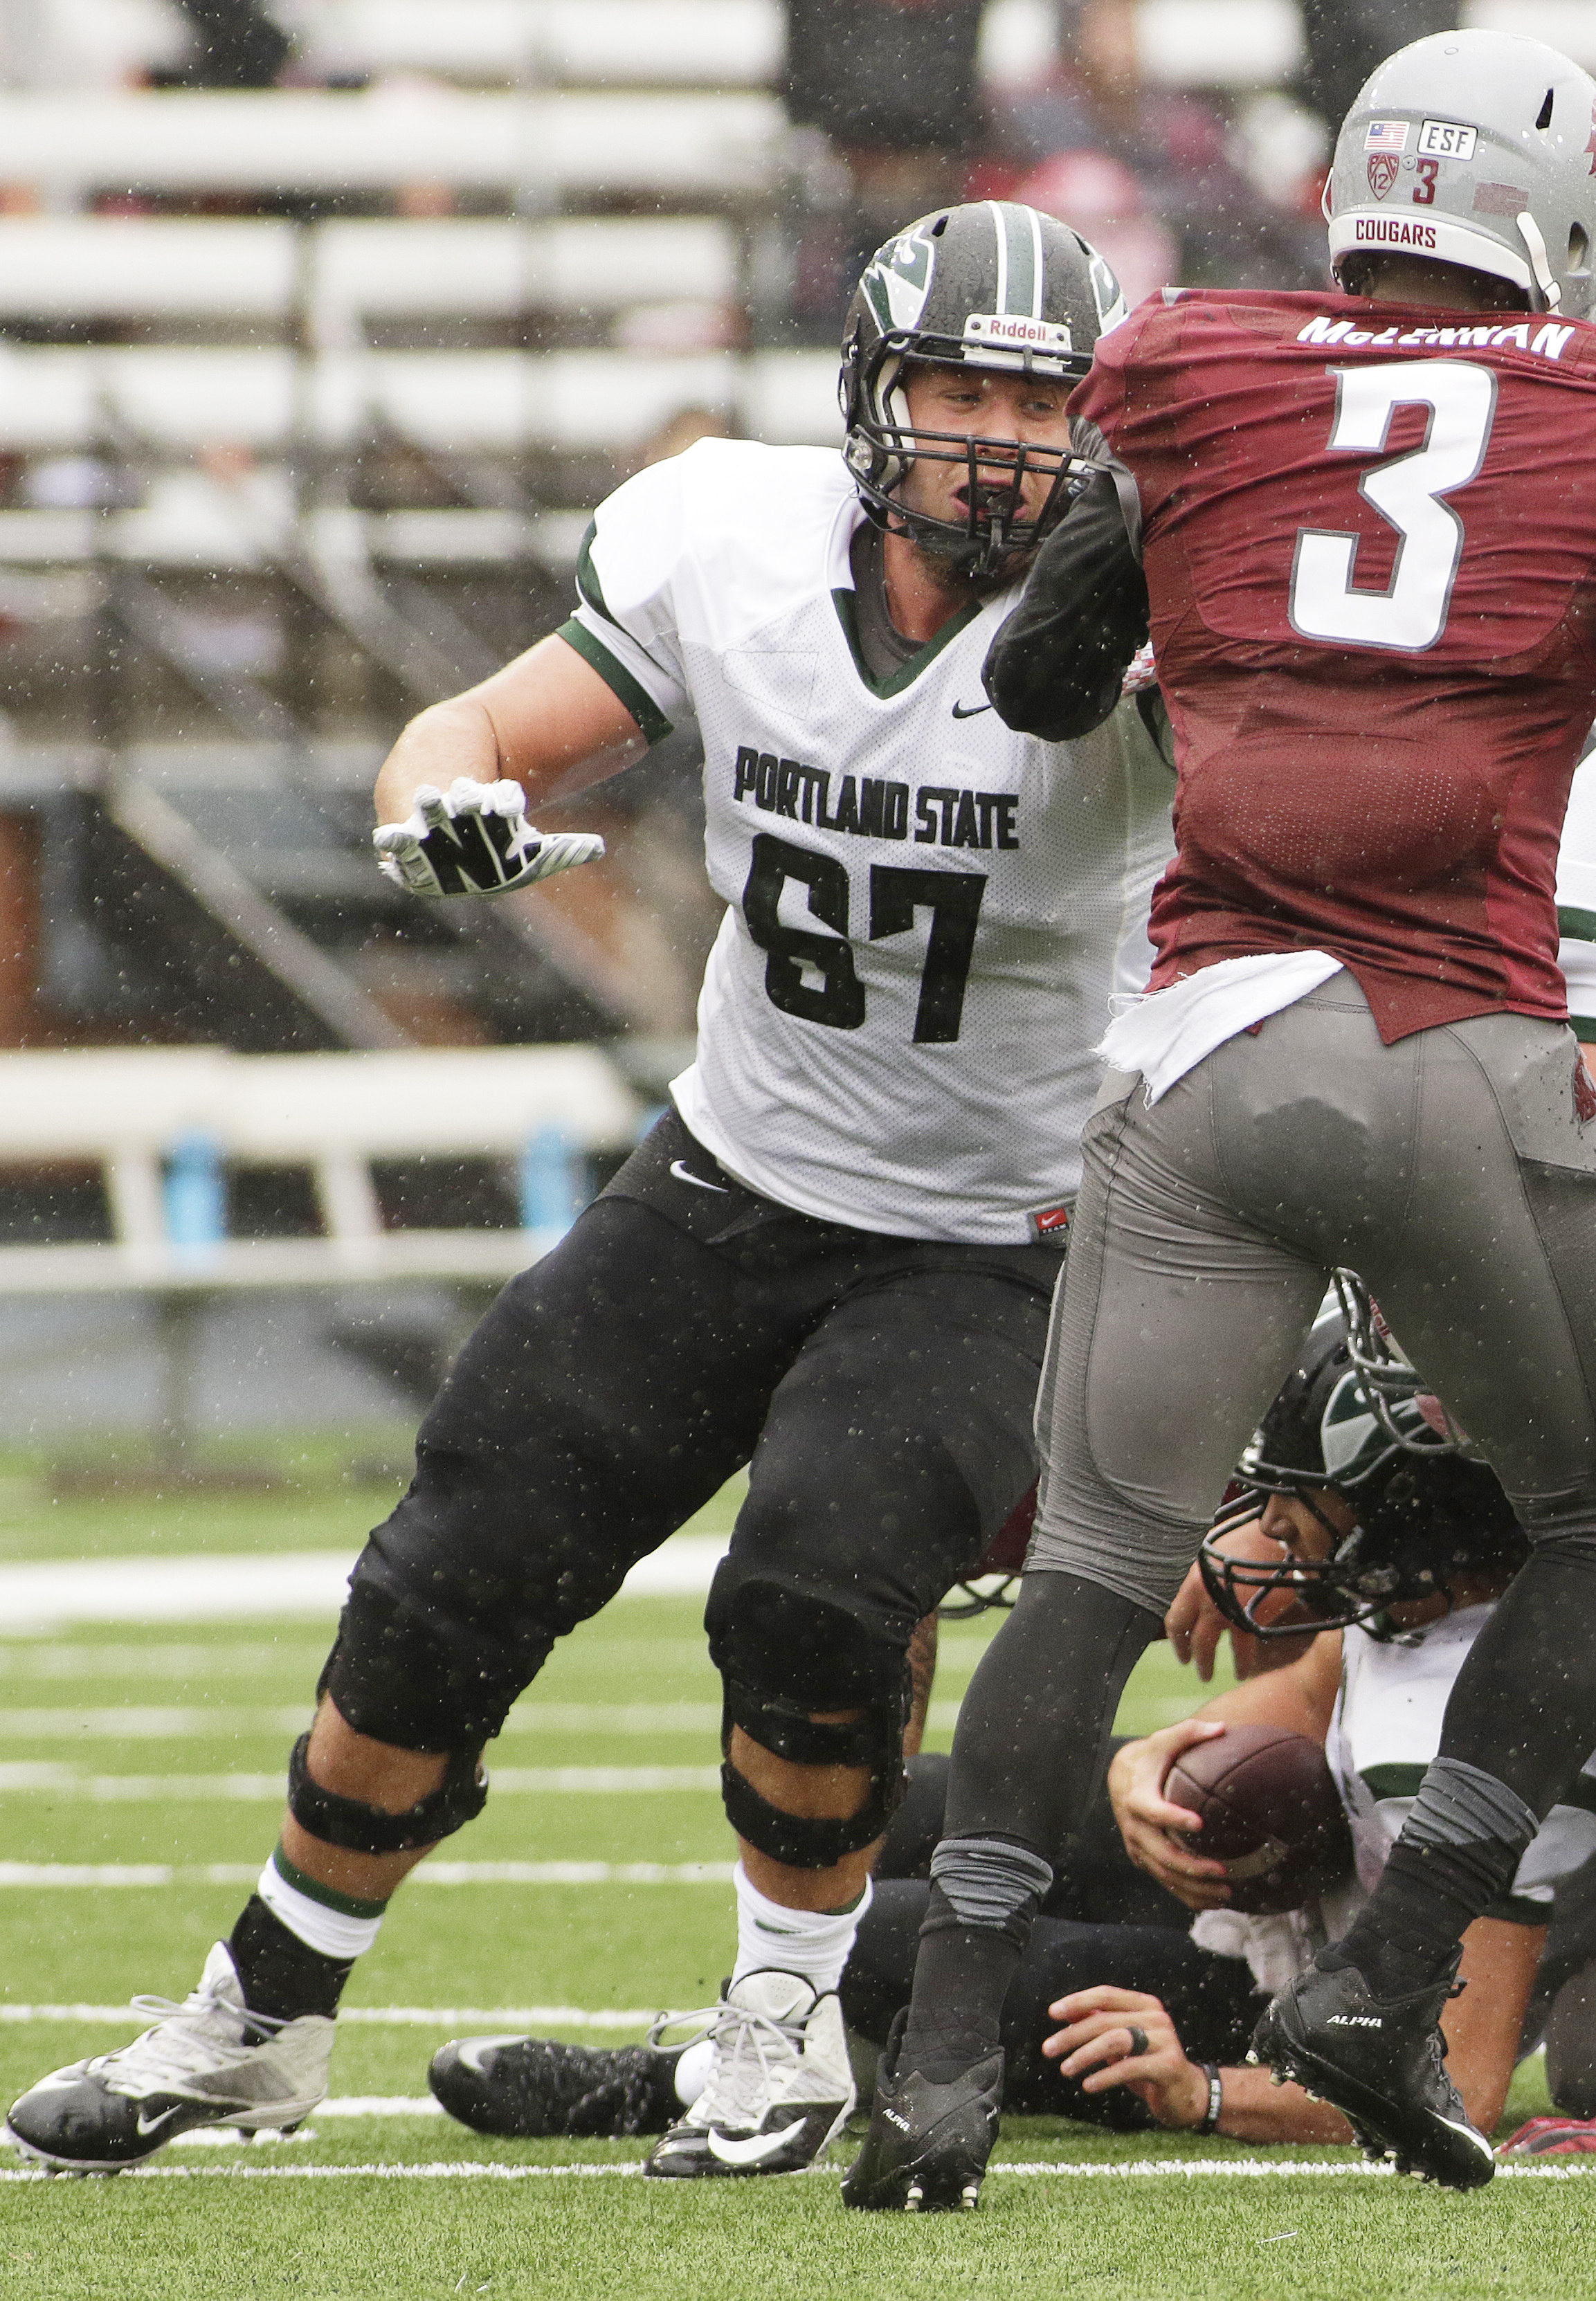 Portland State offensive lineman Kyle Smith (67) blocks Washington State linebacker Ivan McLennan (3) during a play during the second half of an NCAA college football game against Washington State, Saturday, Sept. 5, 2015, in Pullman, Wash. (AP Photo/Youn